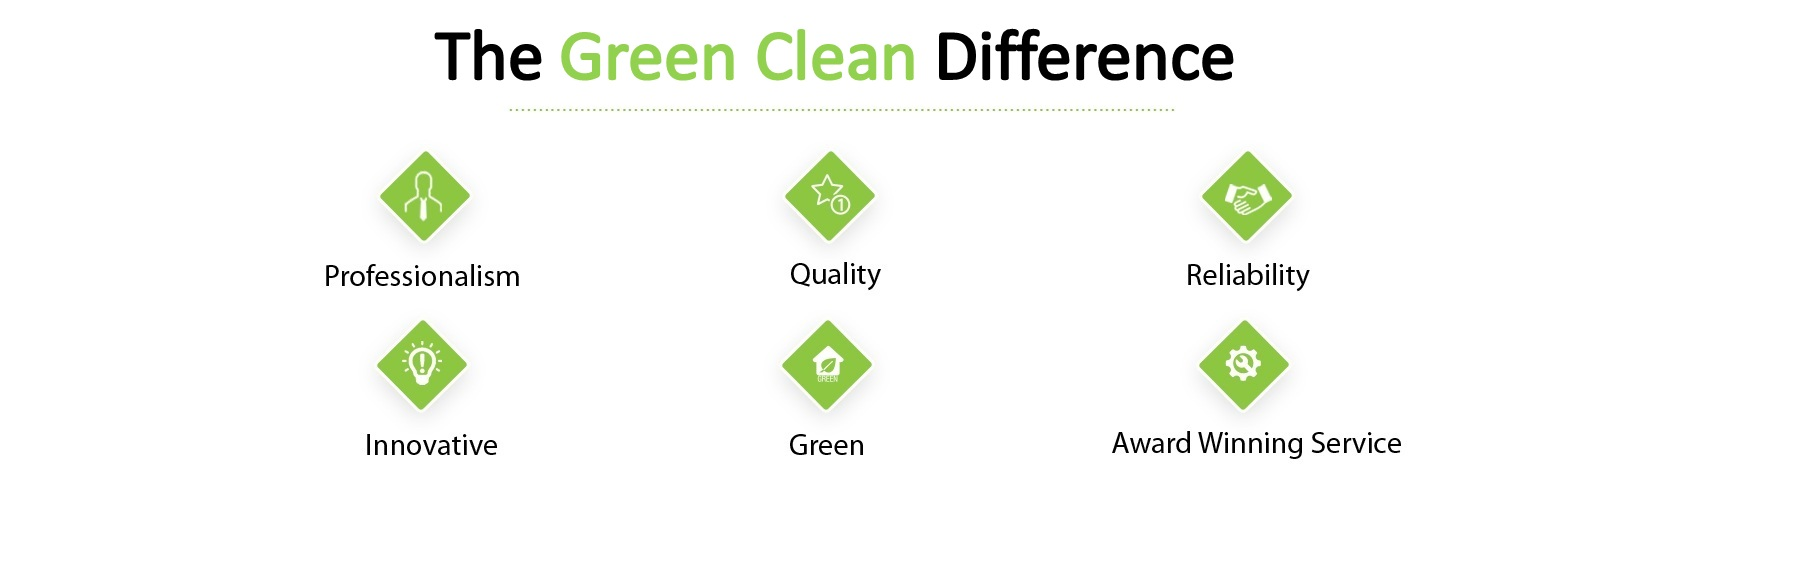 The Green Clean Difference